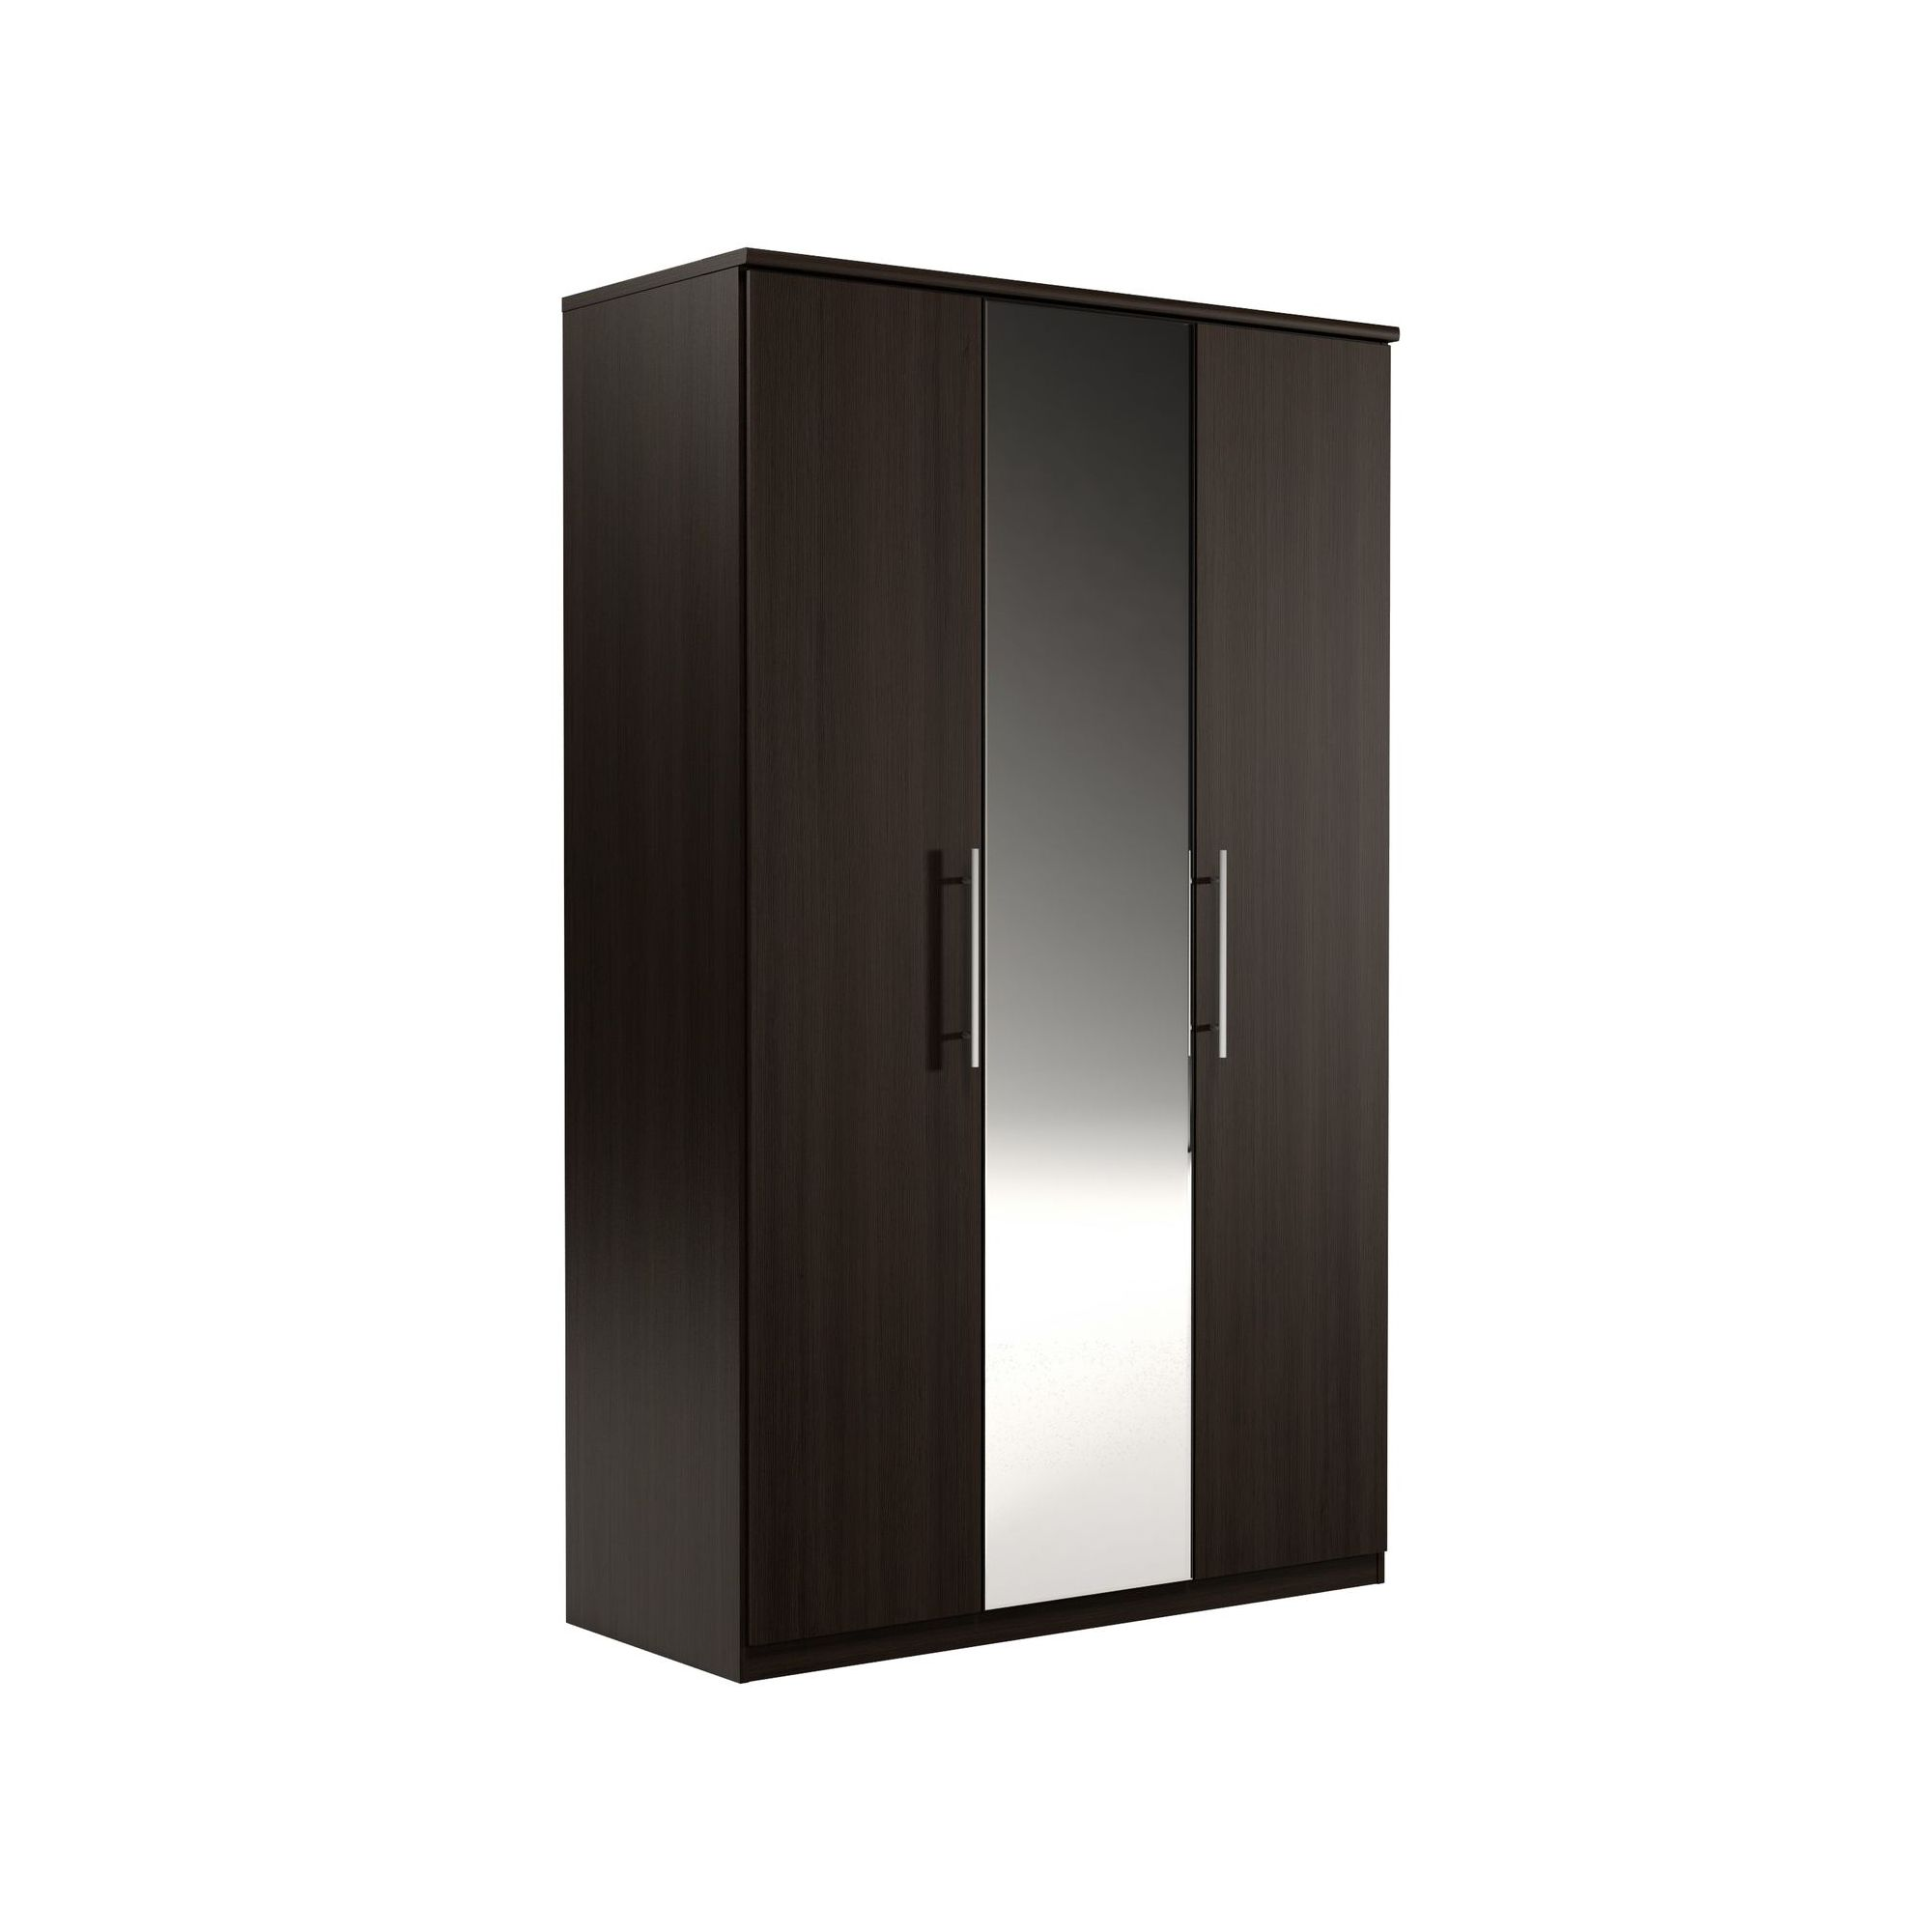 Urbane Designs Prague 3 Door Wardrobe - Espresso at Tesco Direct